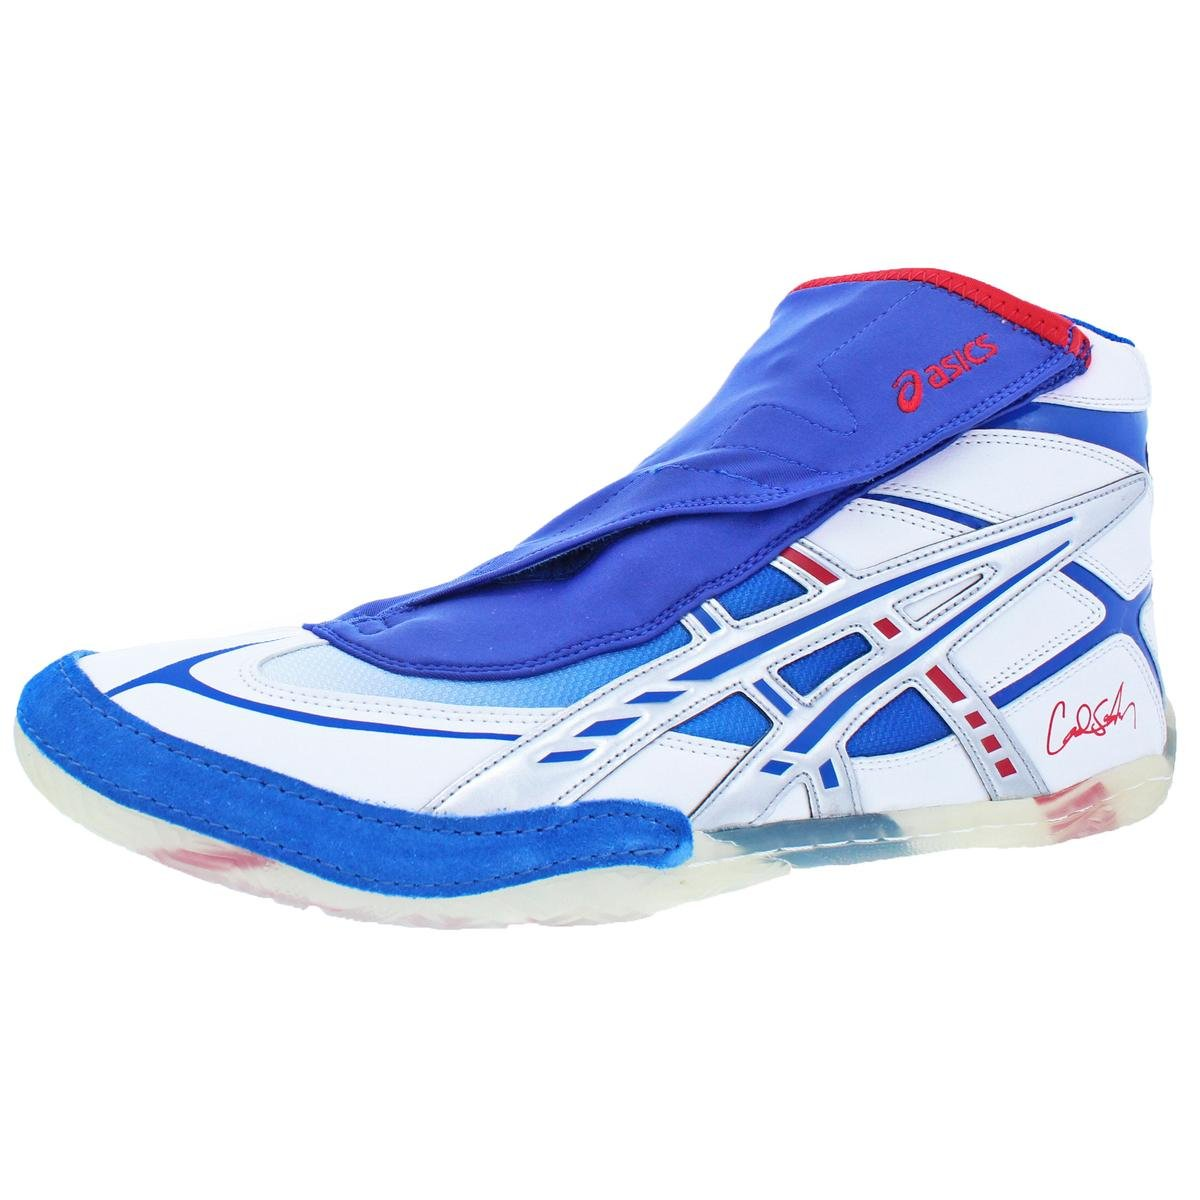 ASICS Men's Cael Wrestling Shoe, White/Blue/Red, 15 M US by ASICS